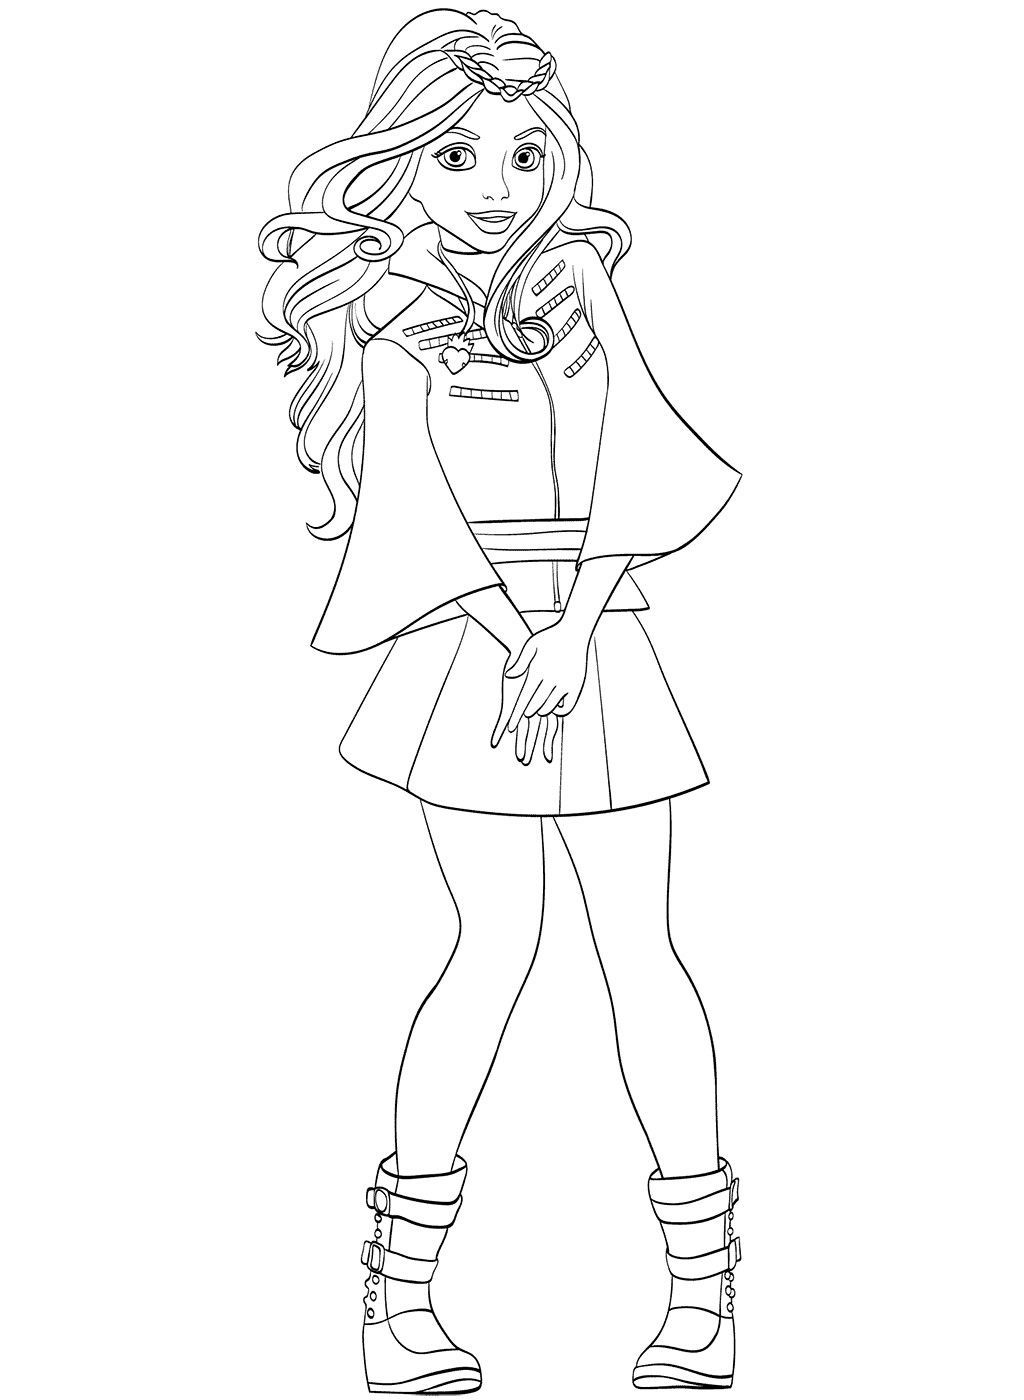 Descendant Coloring Pages Ideas With Superstar Casts Free Coloring Sheets Descendants Coloring Pages Coloring Pages To Print Disney Coloring Pages